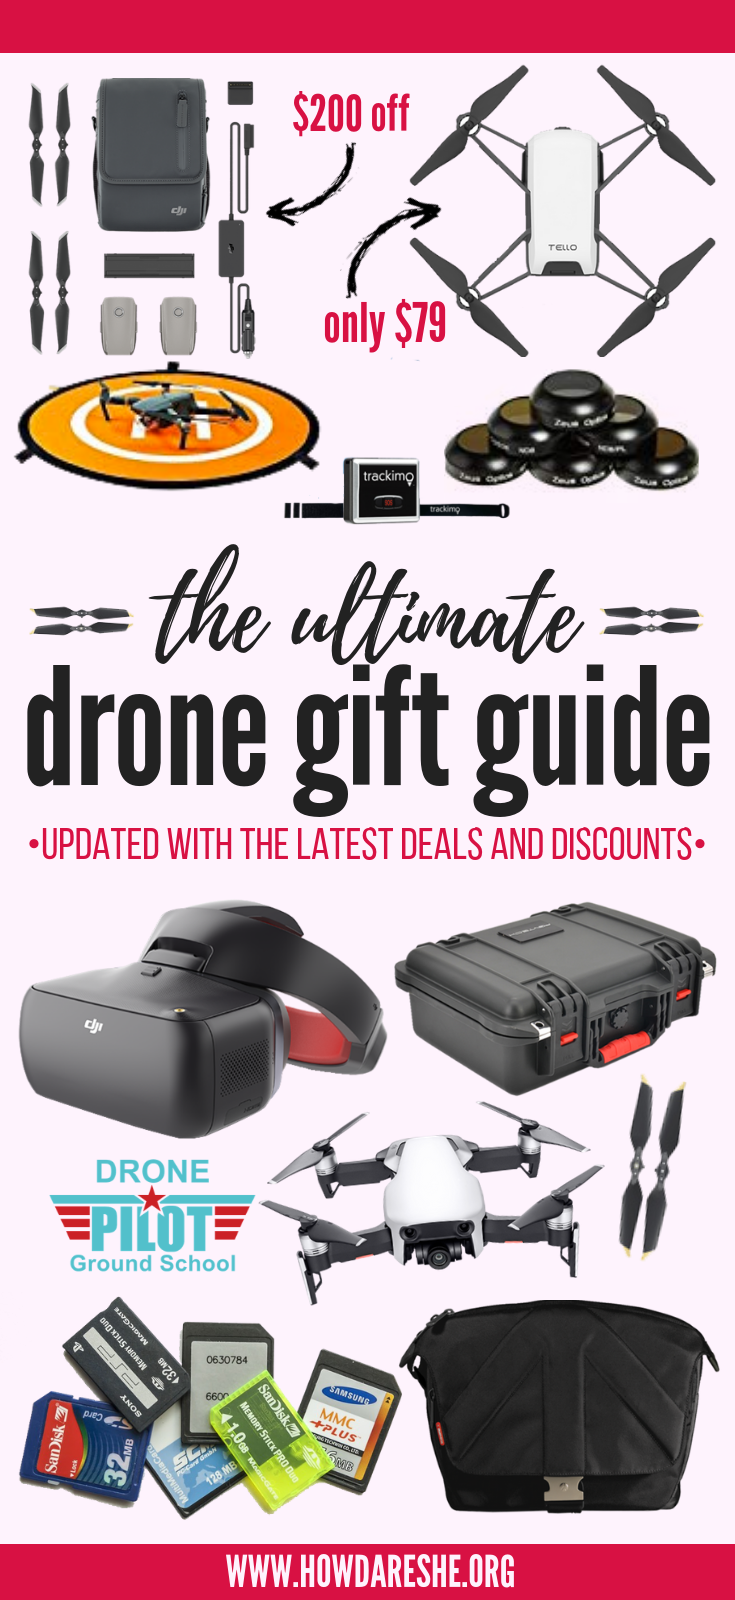 Drone gift guide: drone gift ideas for any budget